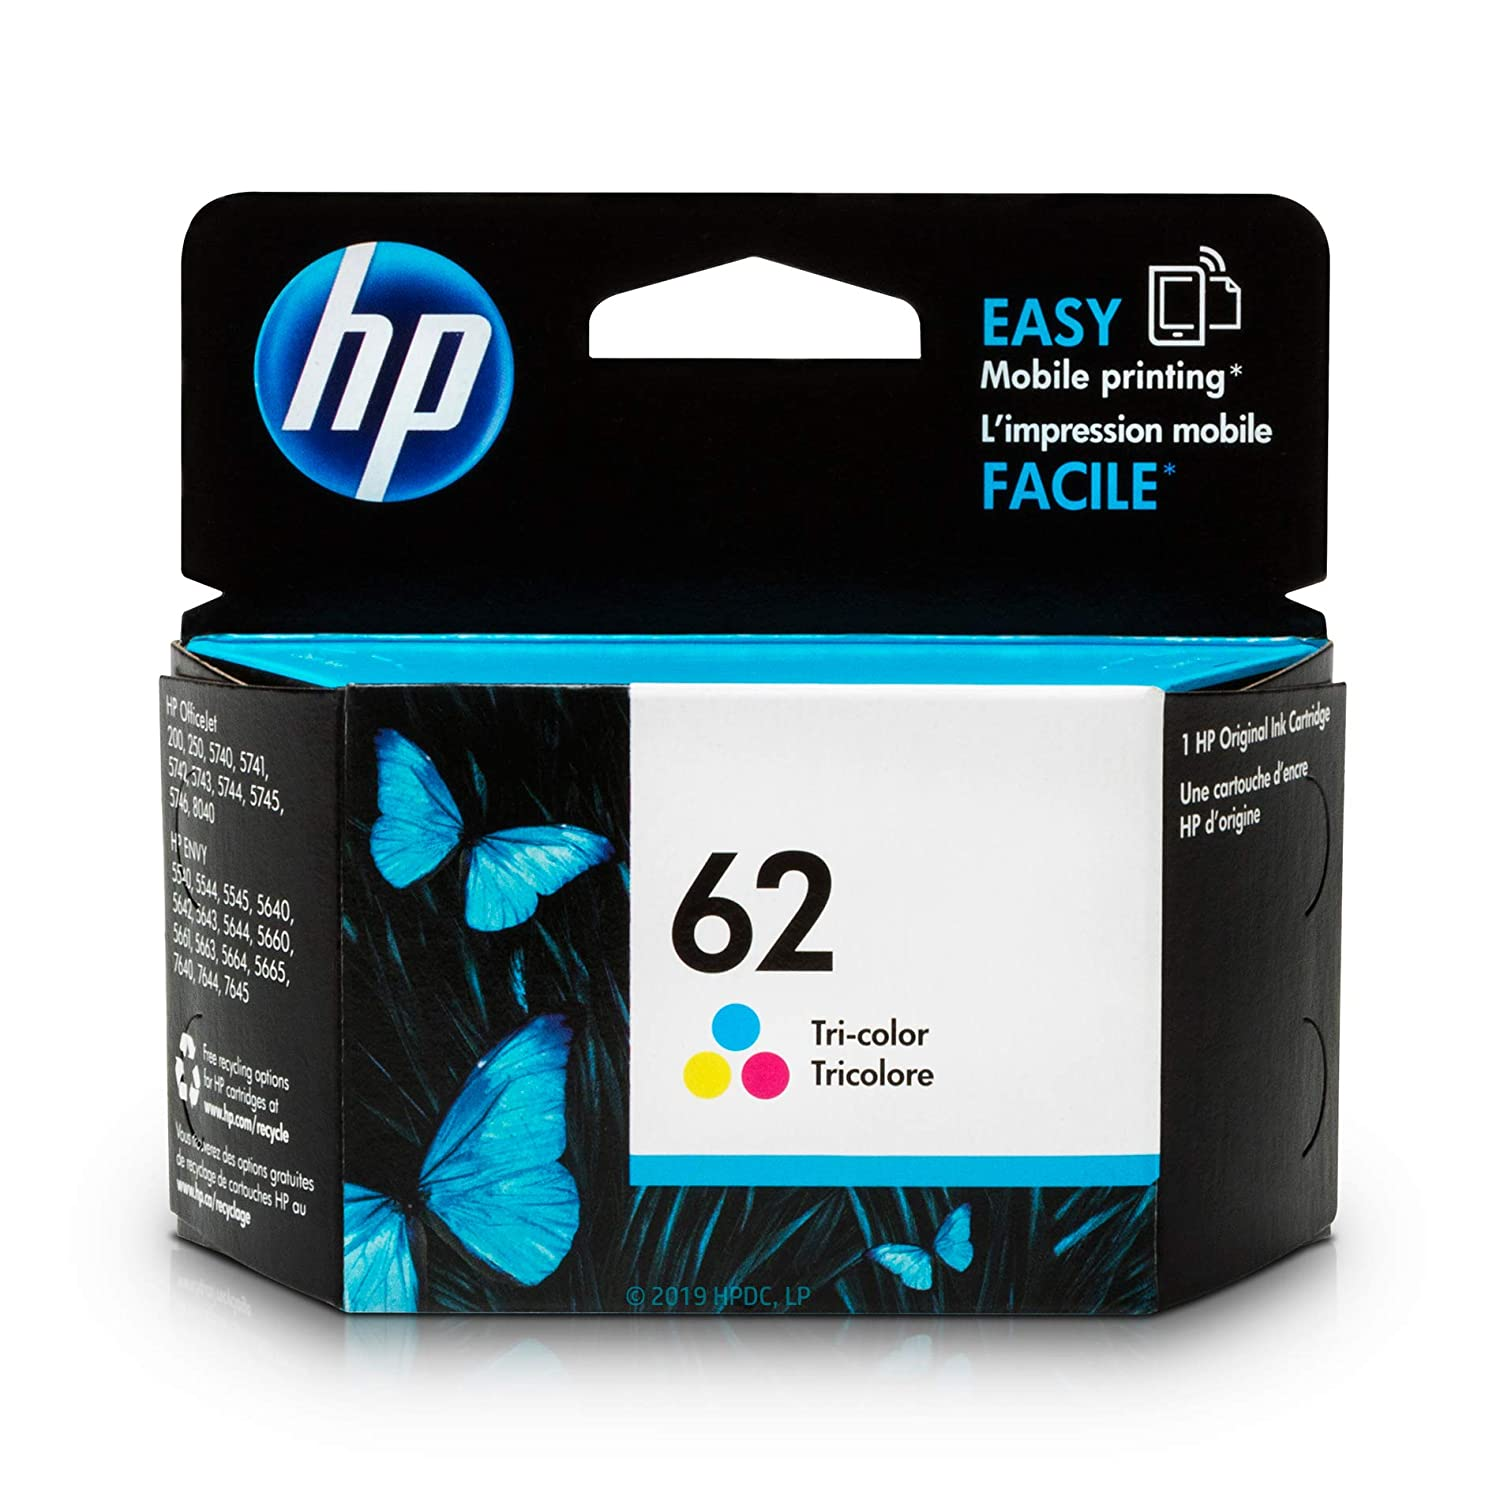 HP 62 Tri-color Ink Cartridge (C2P06AN) for HP ENVY 5540 5541 5542 5543 5544 5545 5547 5548 5549 5640 5642 5643 5644 5660 5661 5663 5664 5665 7640 7643 7644 7645 HP Officejet 200 250 258 5740 5741